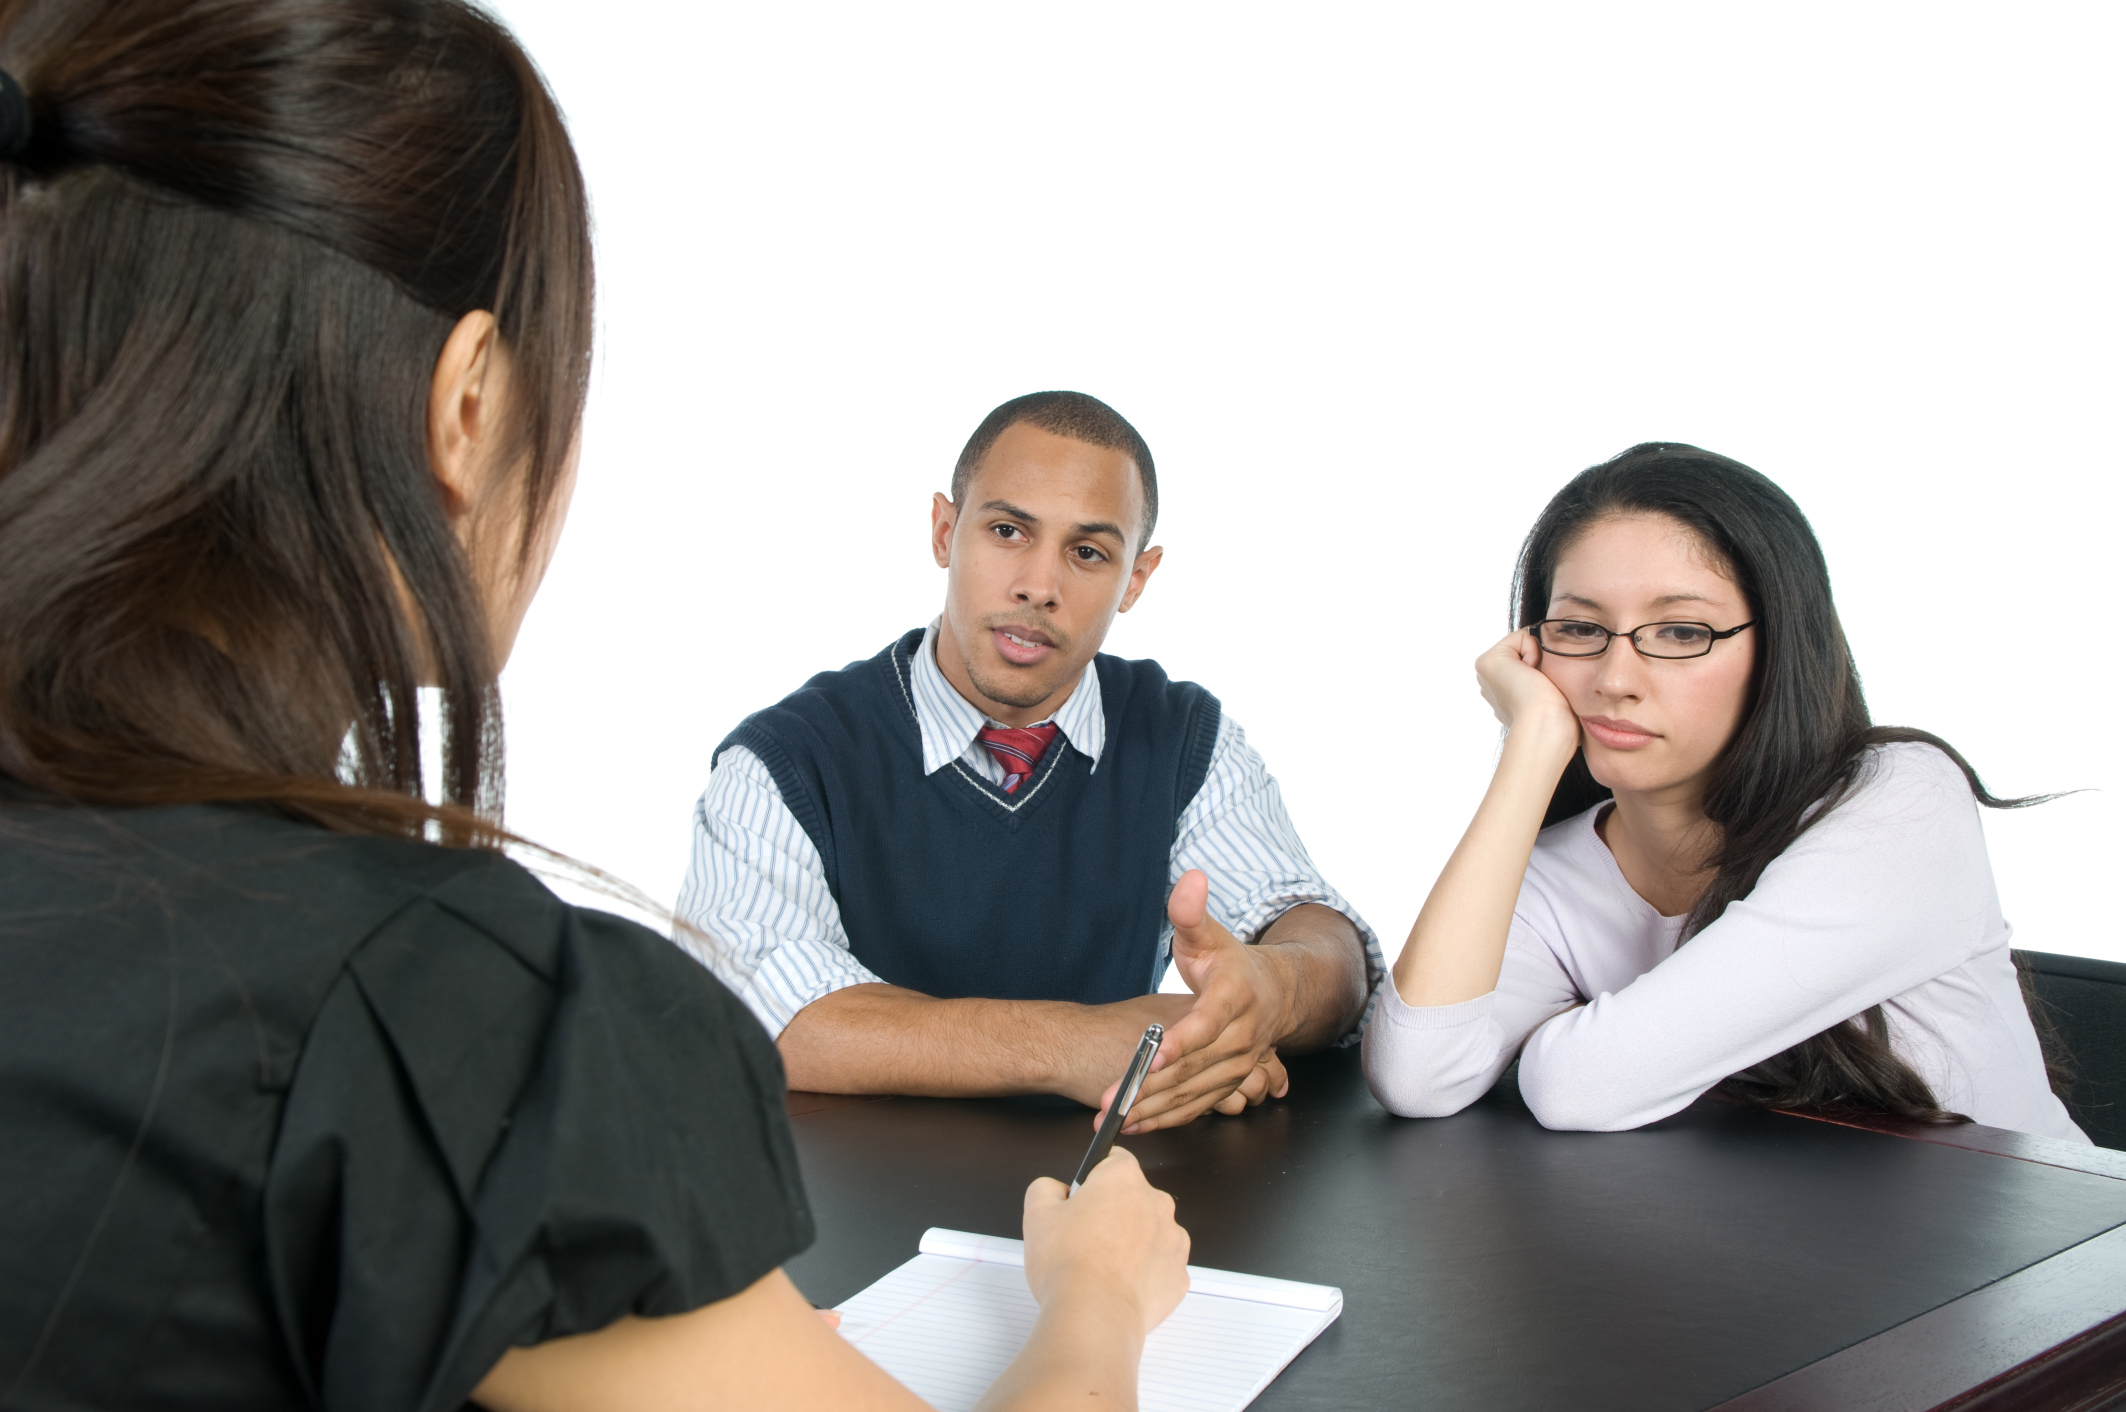 Unhappy couple getting counseling